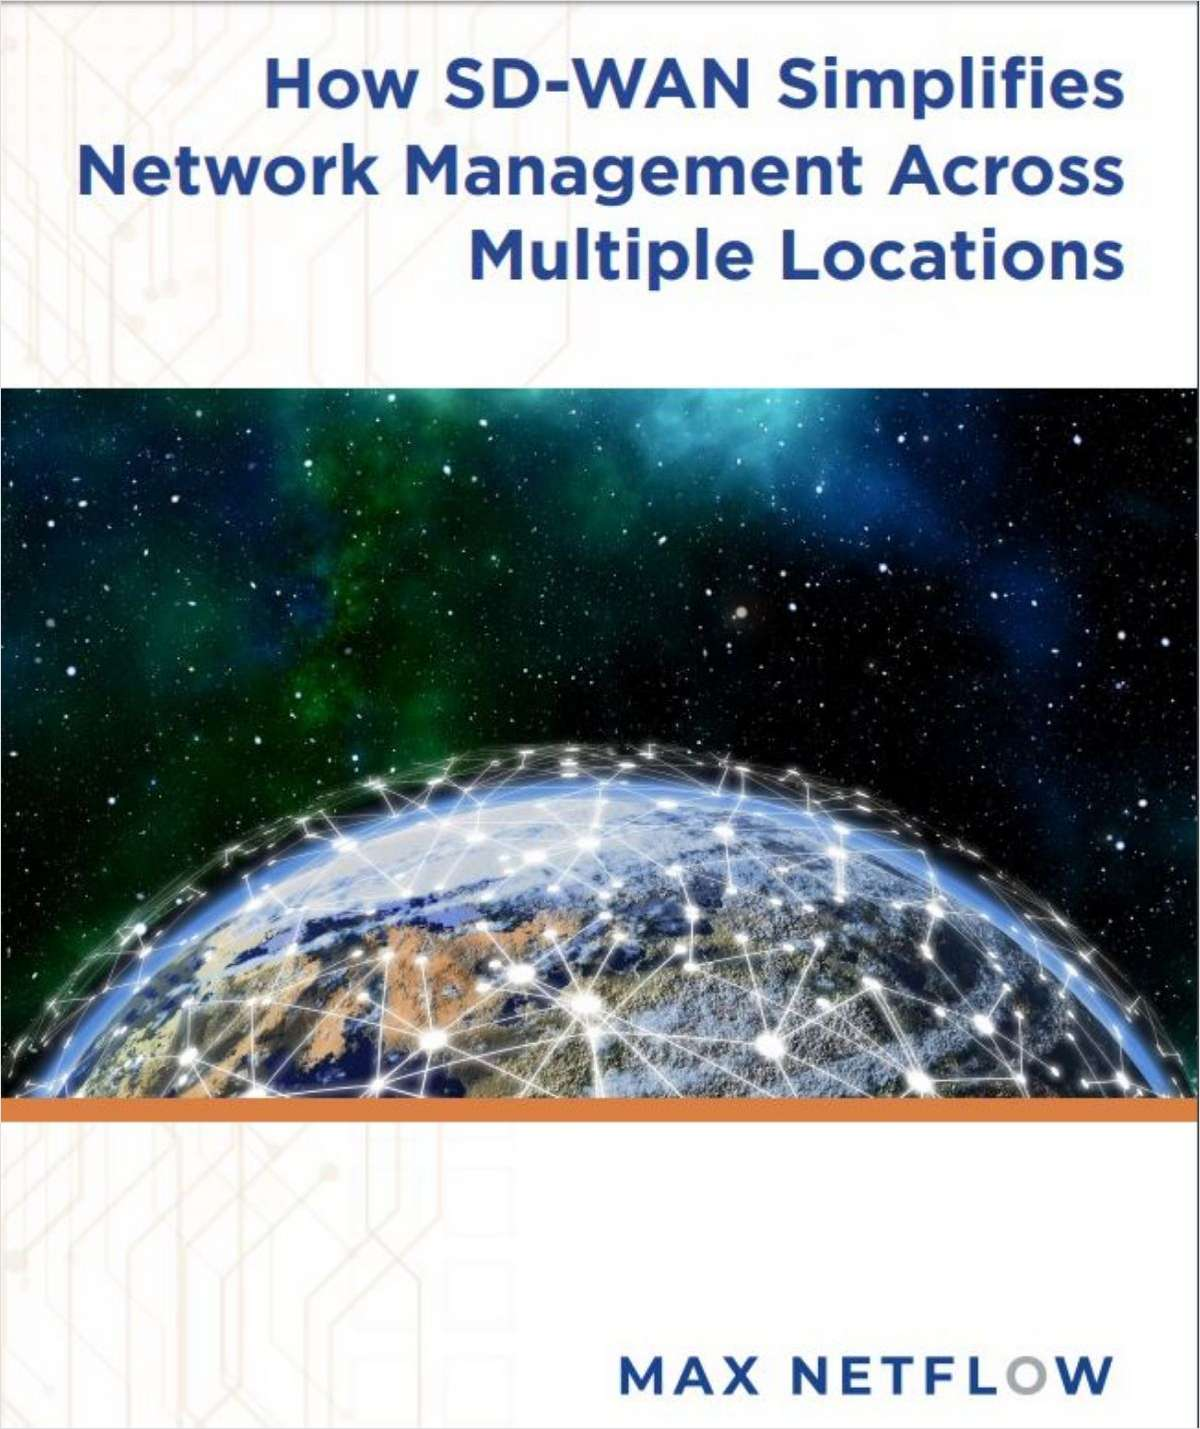 How SD-WAN Simplifies Network Management Across Multiple Locations